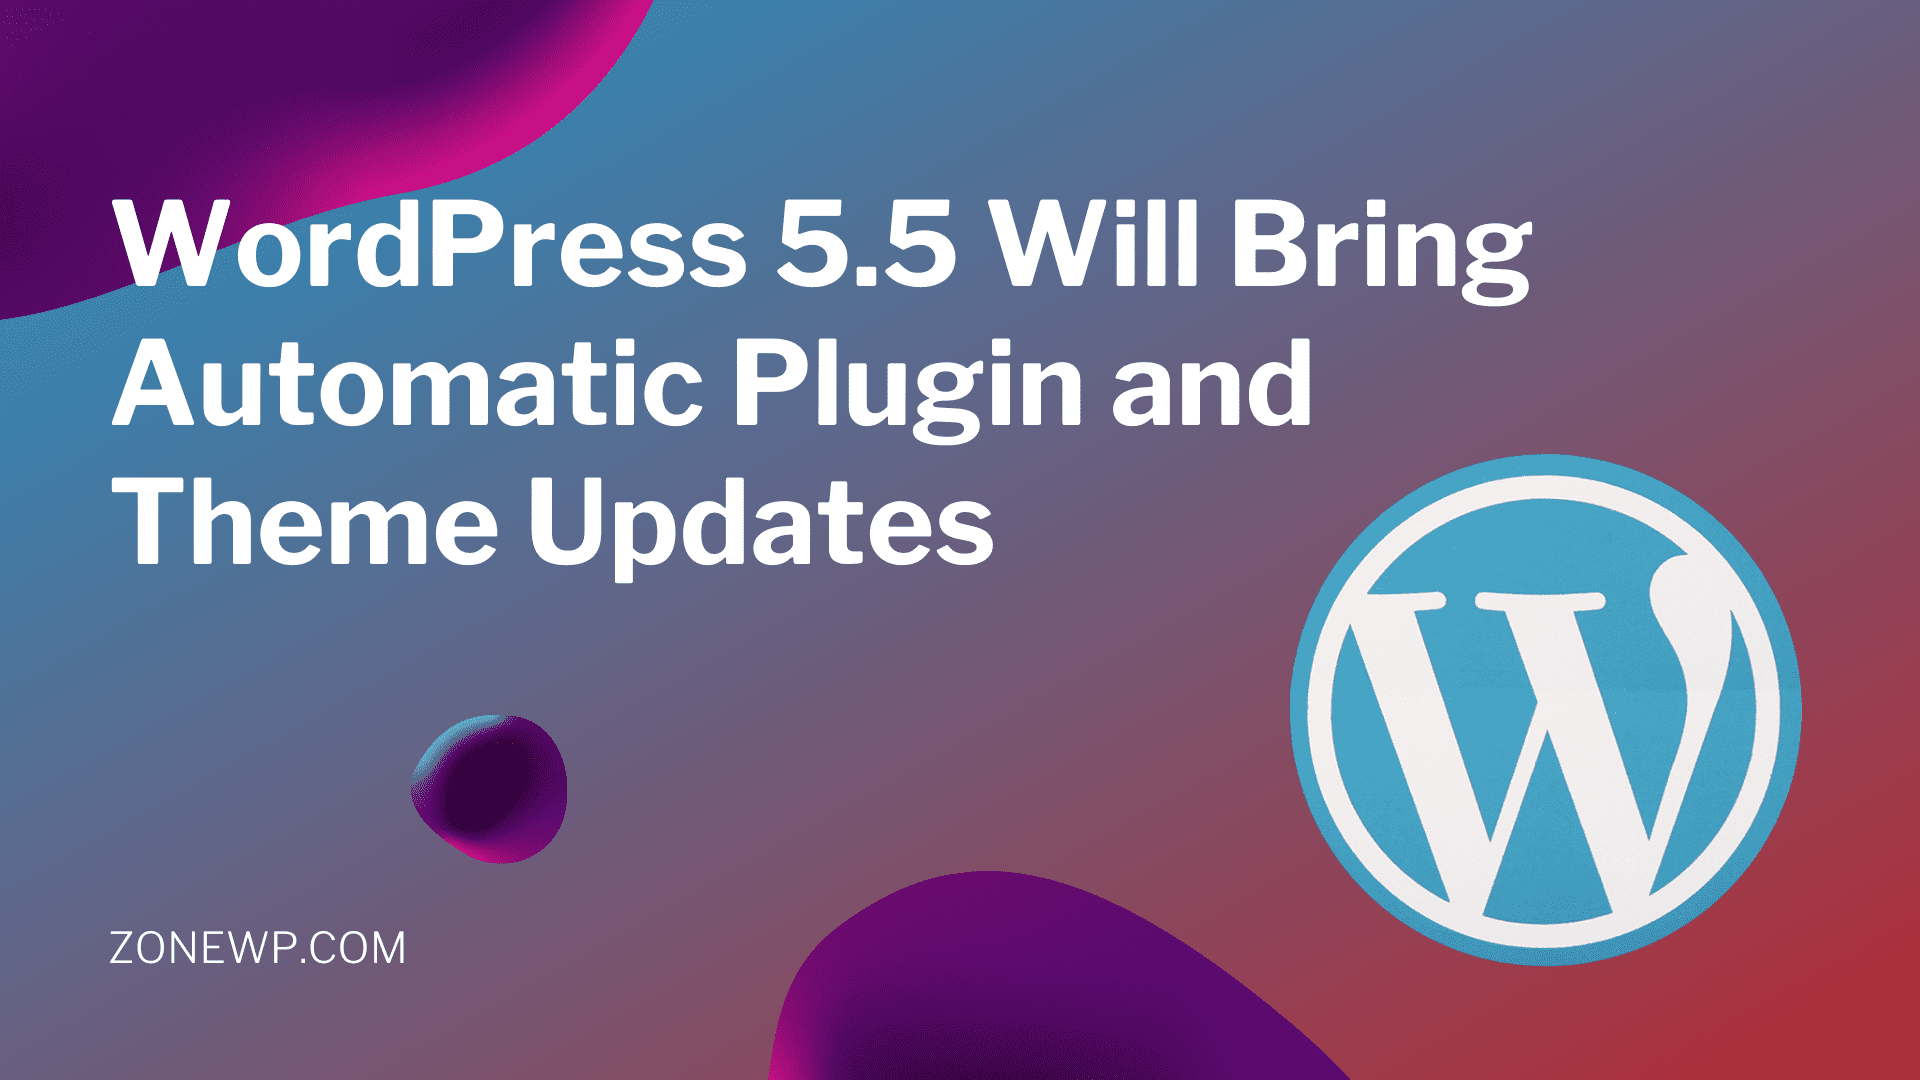 WordPress 5.5 Will Bring Automatic Plugin and Theme Updates